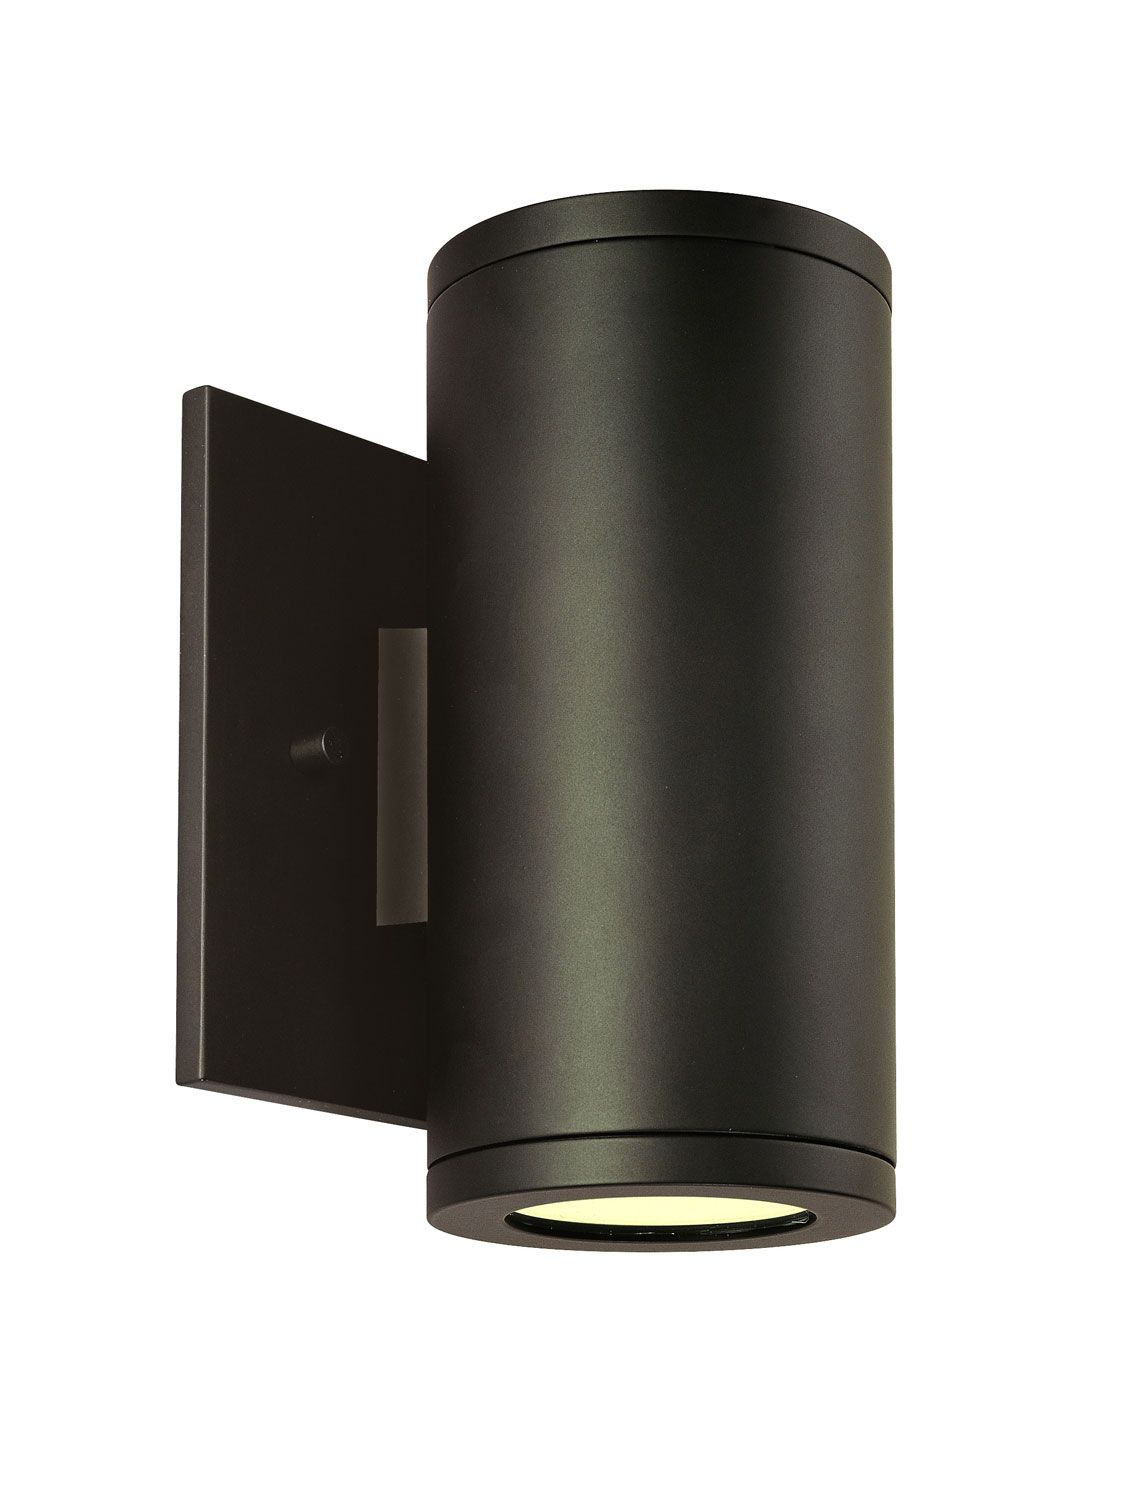 We Share With You Outdoor Wall Lighting Exterior Lights Garden